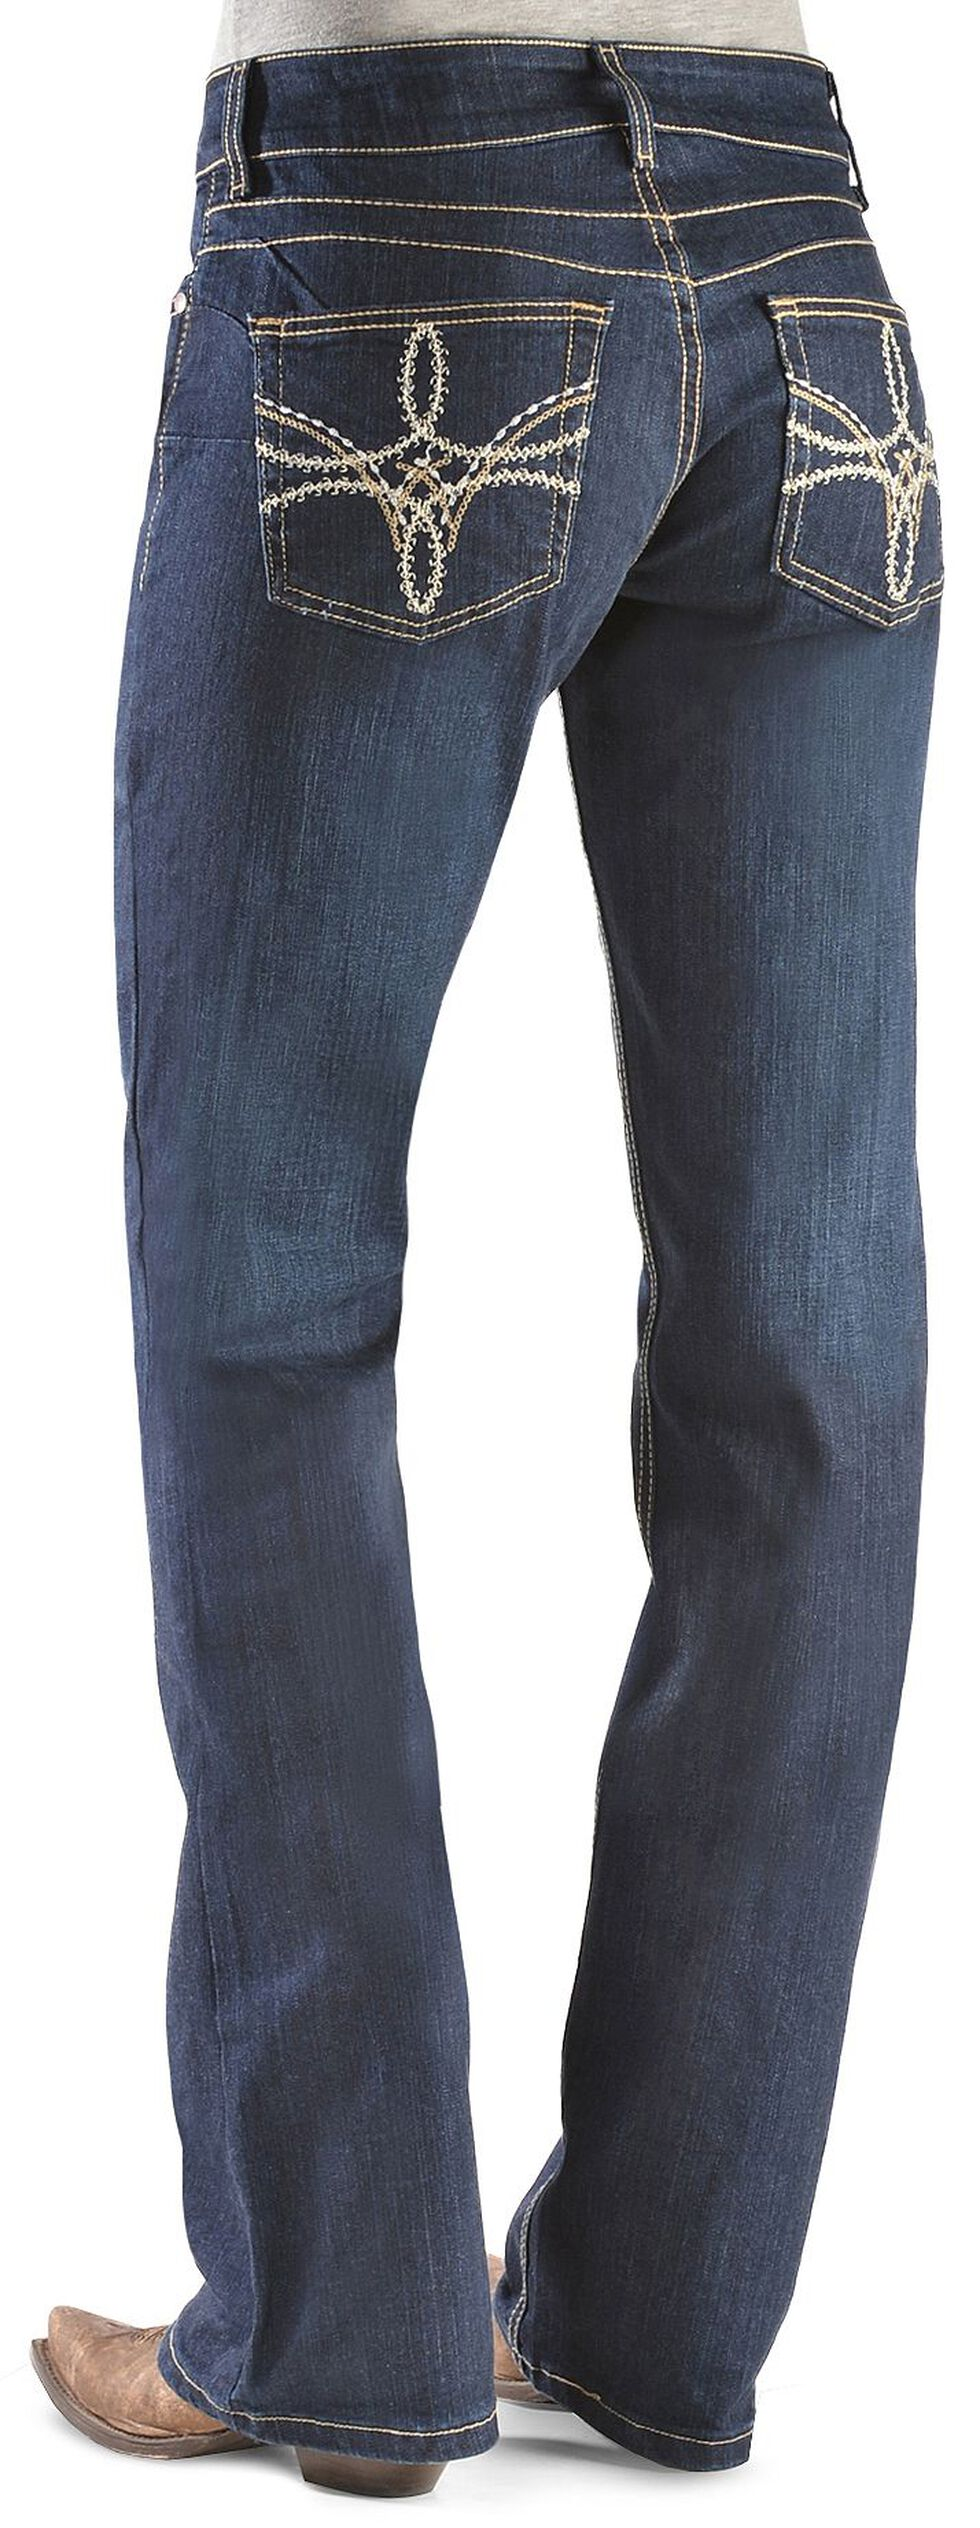 Wrangler Women's Dark Rinse Retro Mae Booty Up Jeans, Denim, hi-res